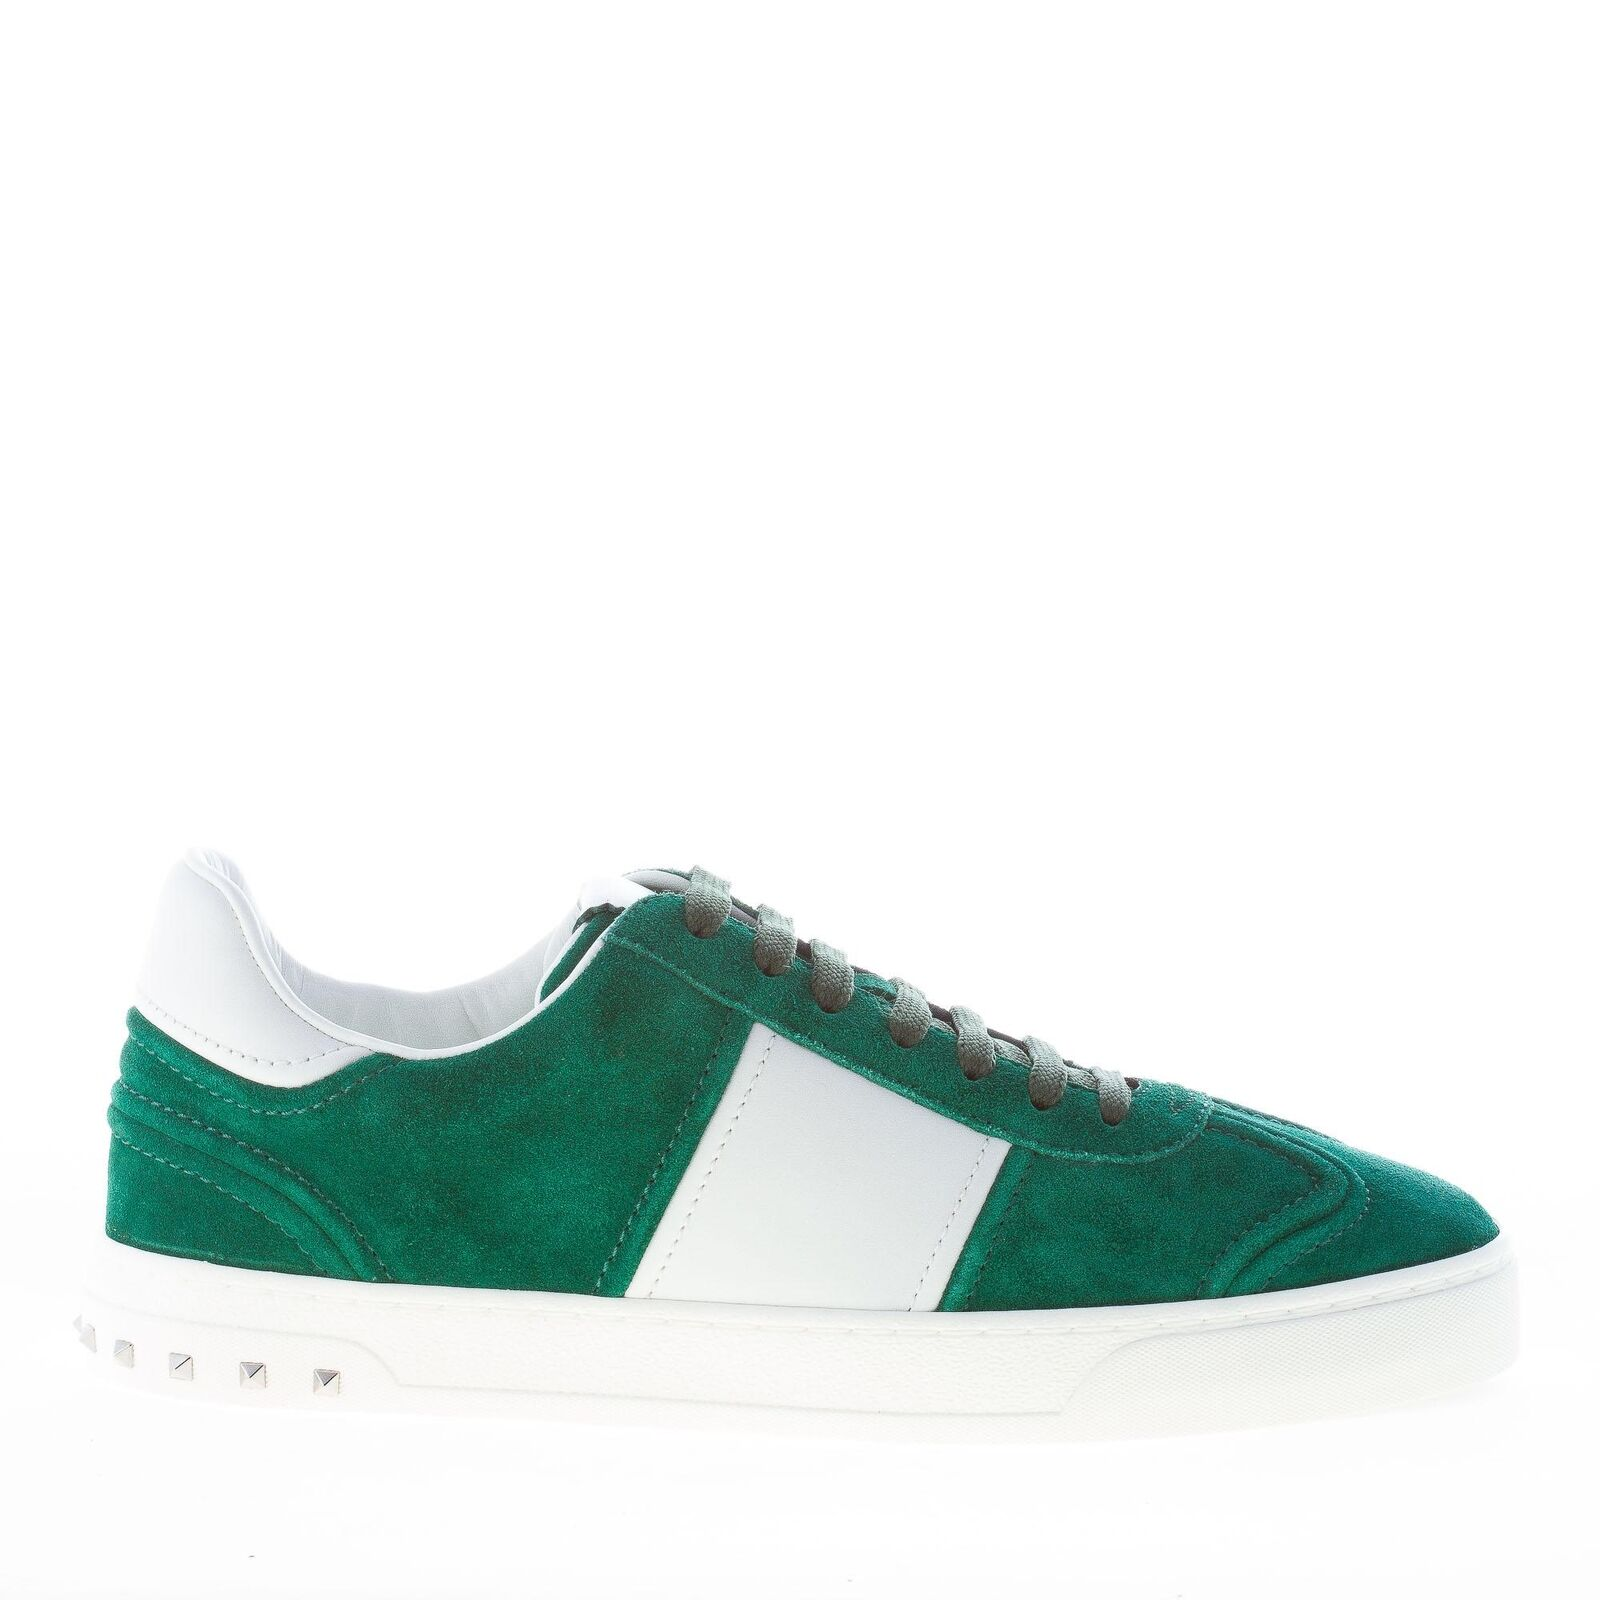 VALENTINO men shoes Green suede Flycrew sneaker white band studs NY2S0A08LAR23N